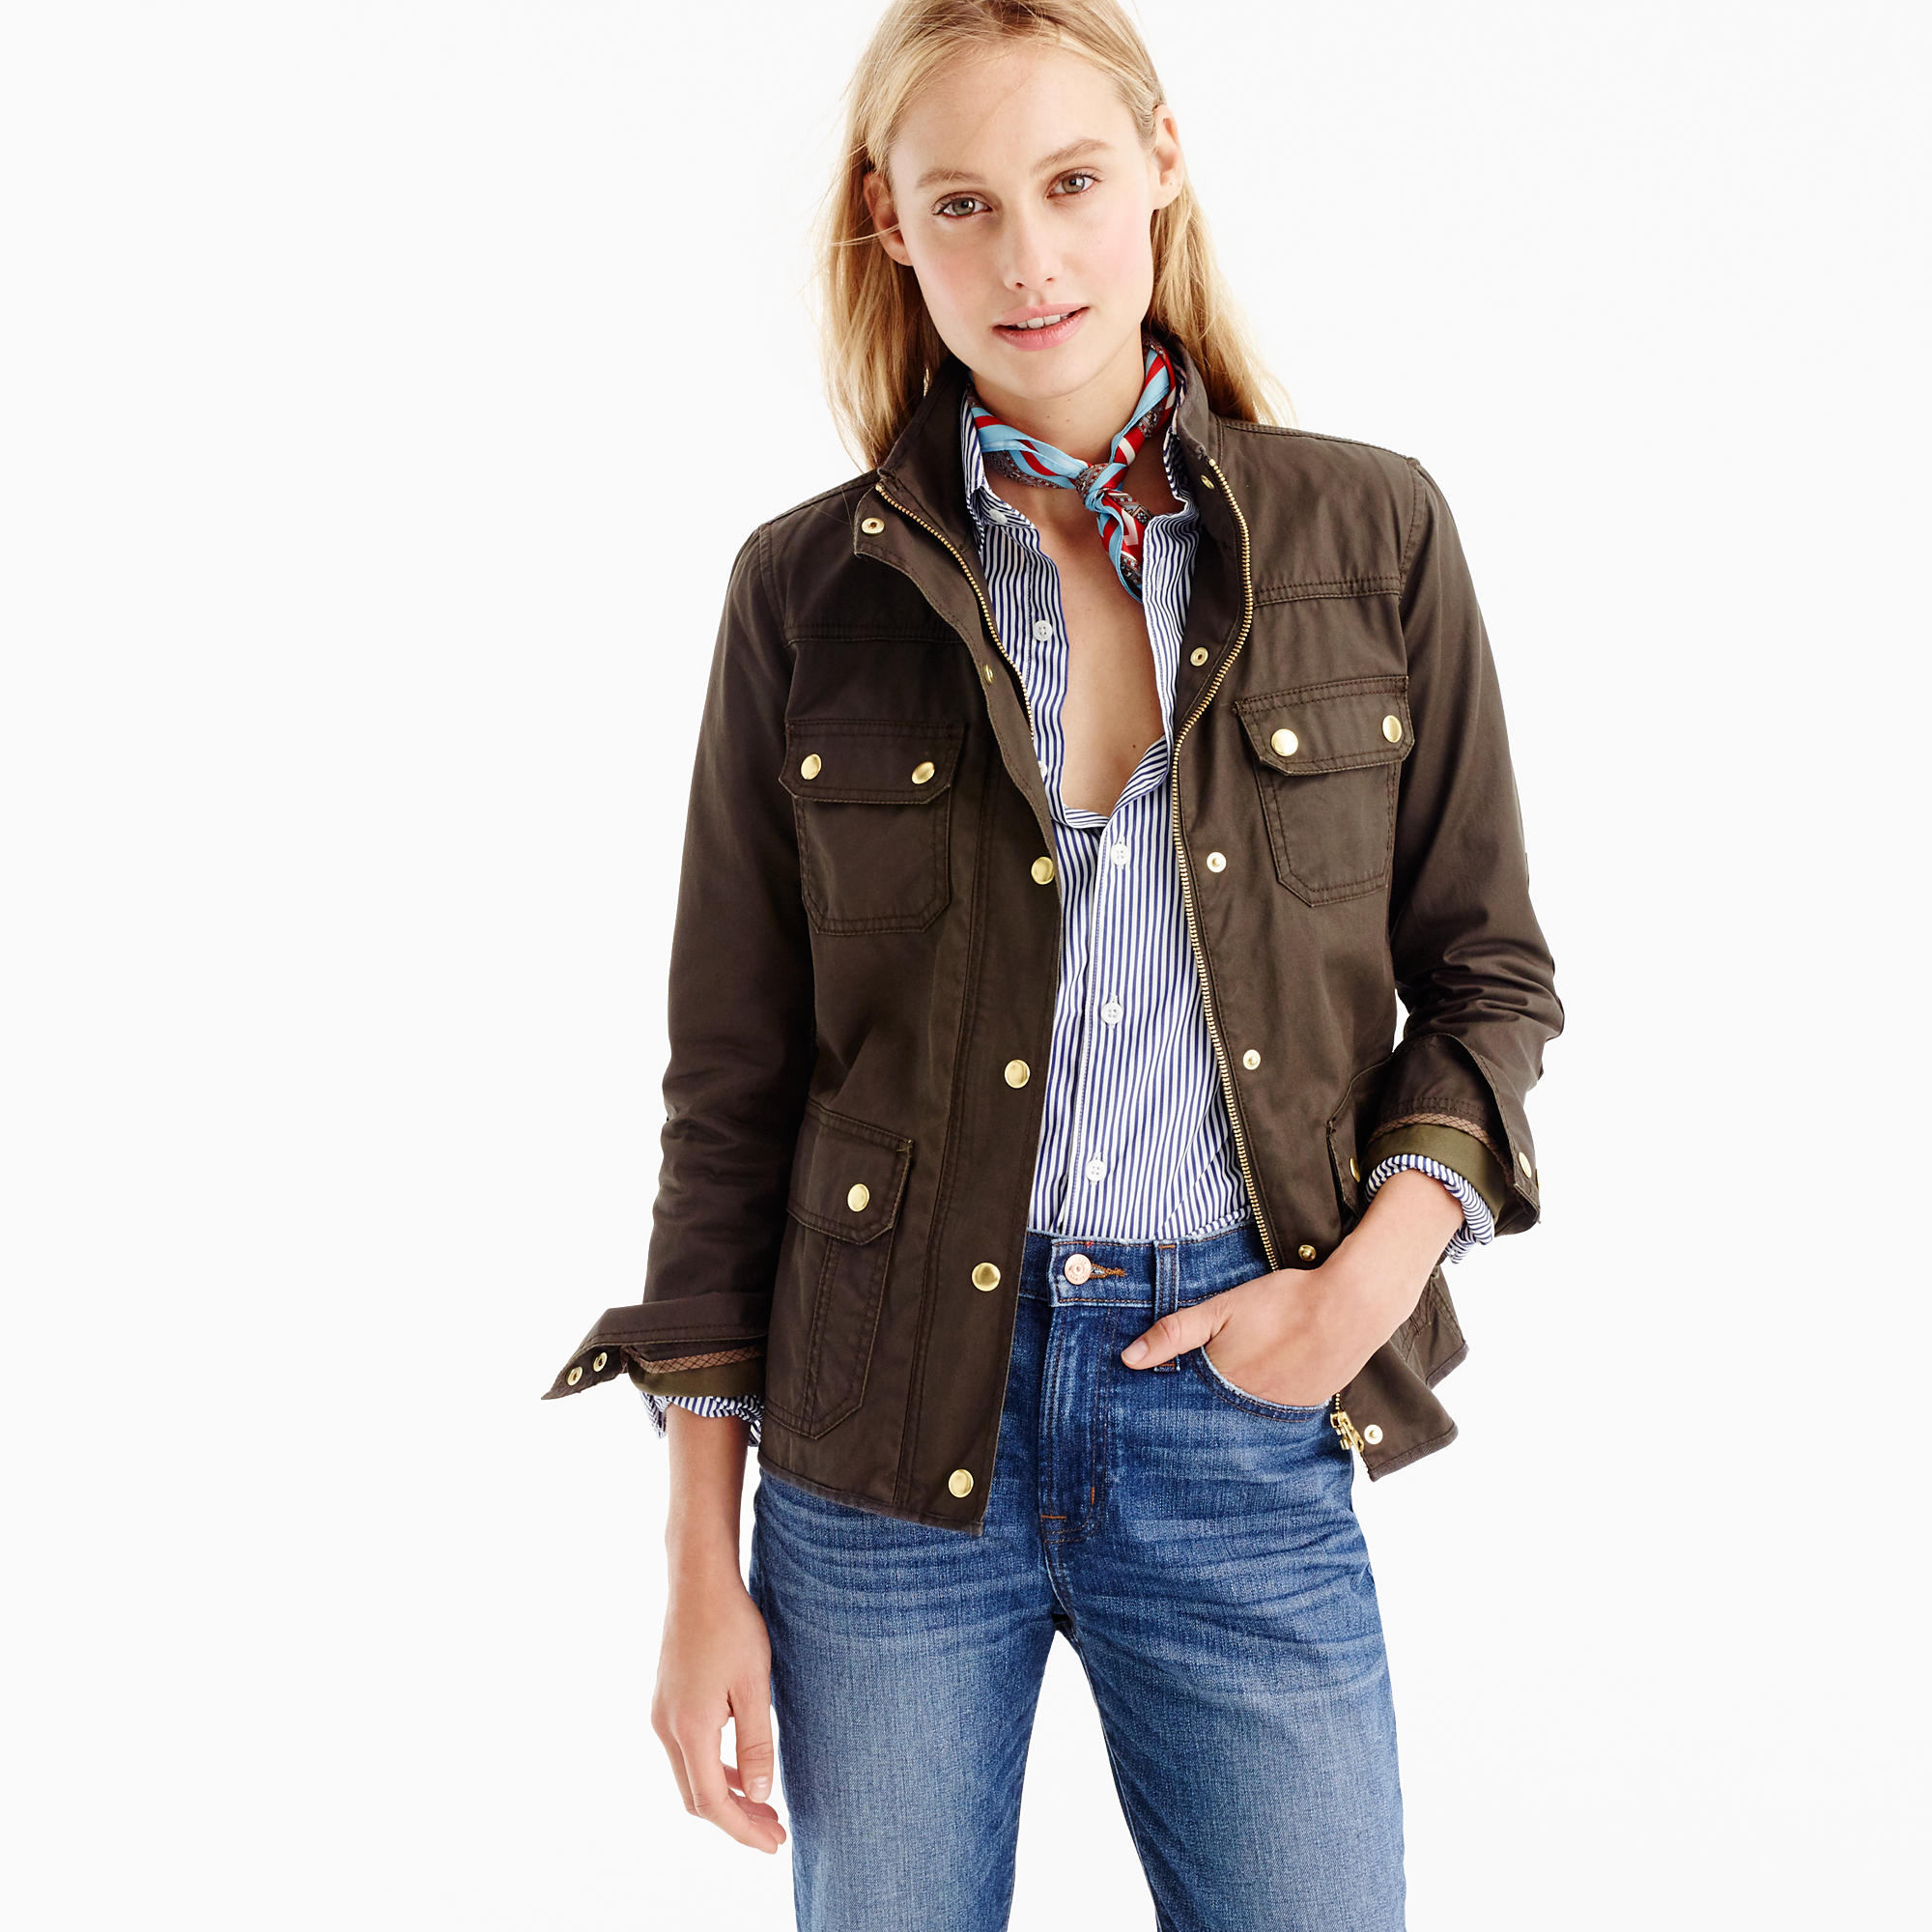 The Downtown Field Jacket : Women's Coats & Jackets | J.Crew